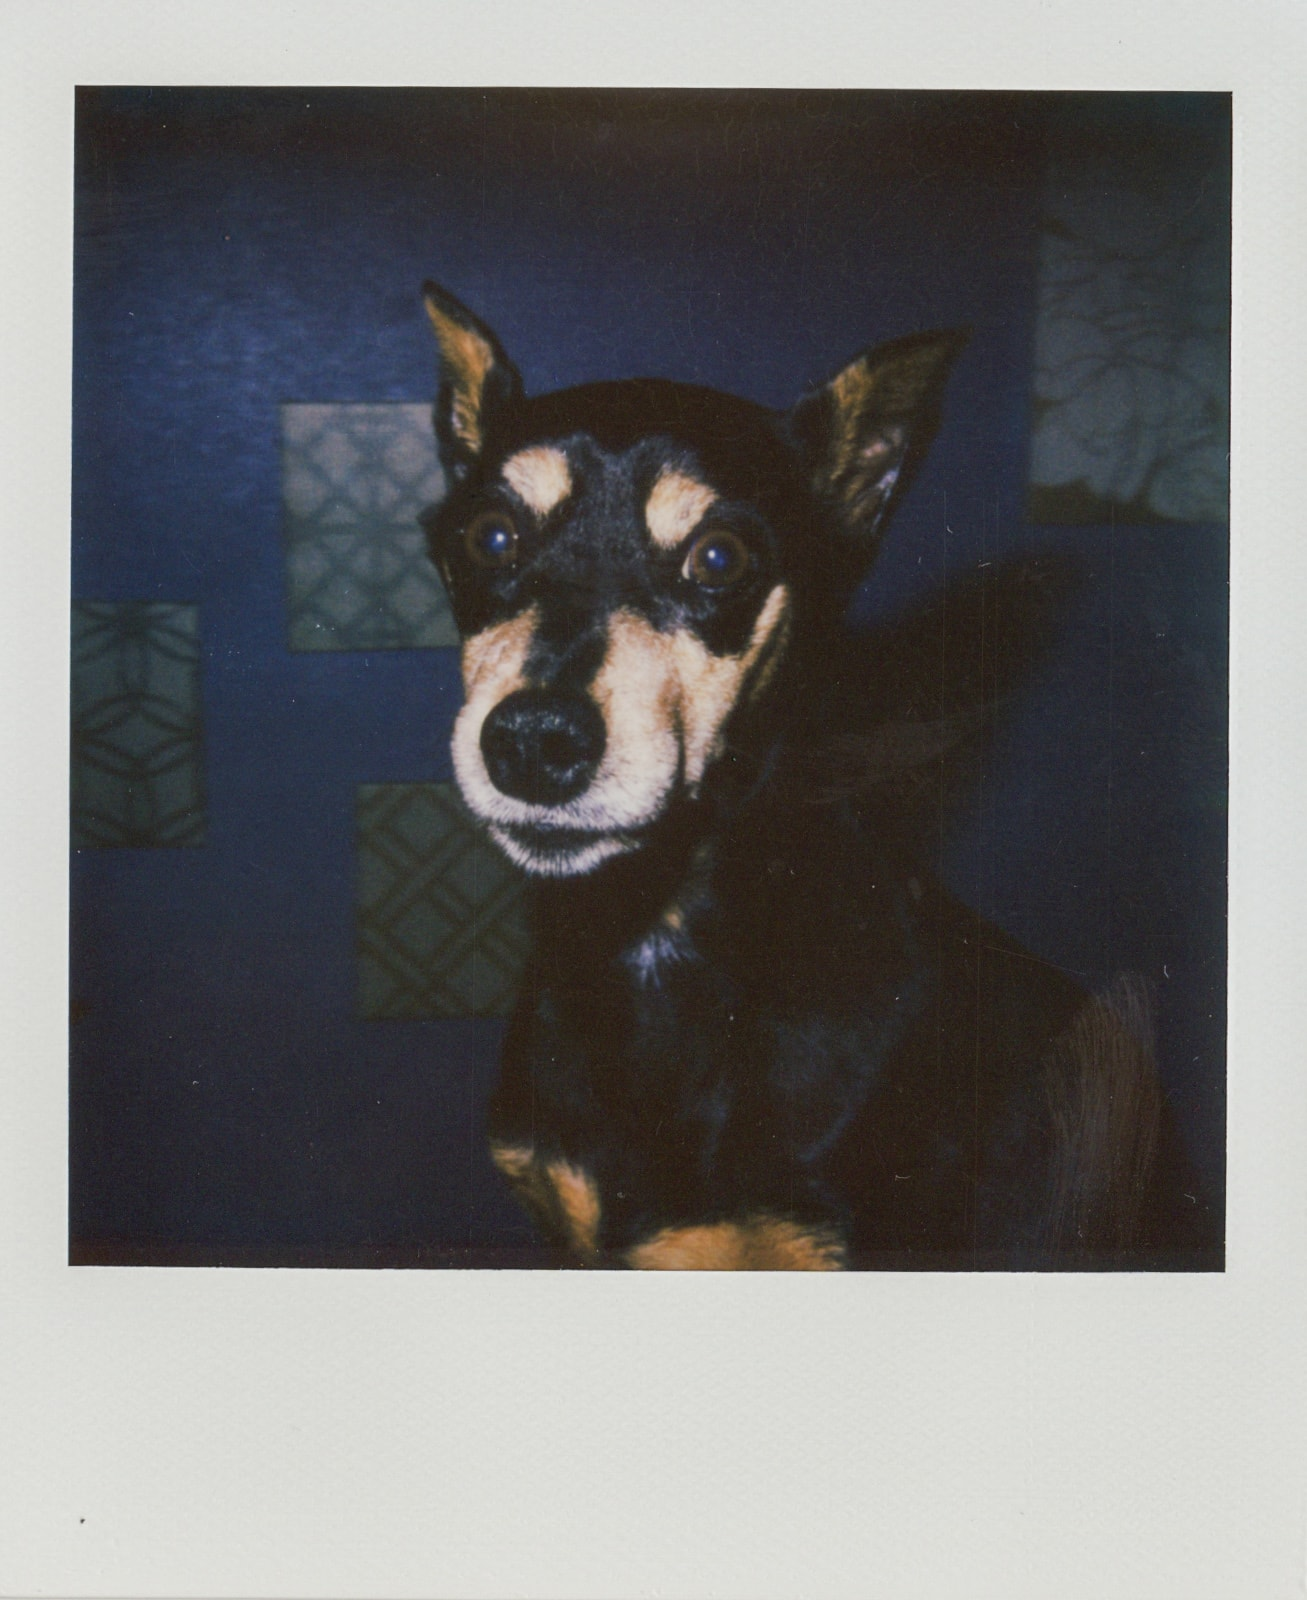 A Polaroid portrait of my miniature pinscher in Rockwall, Texas. Best Photos of 2020.